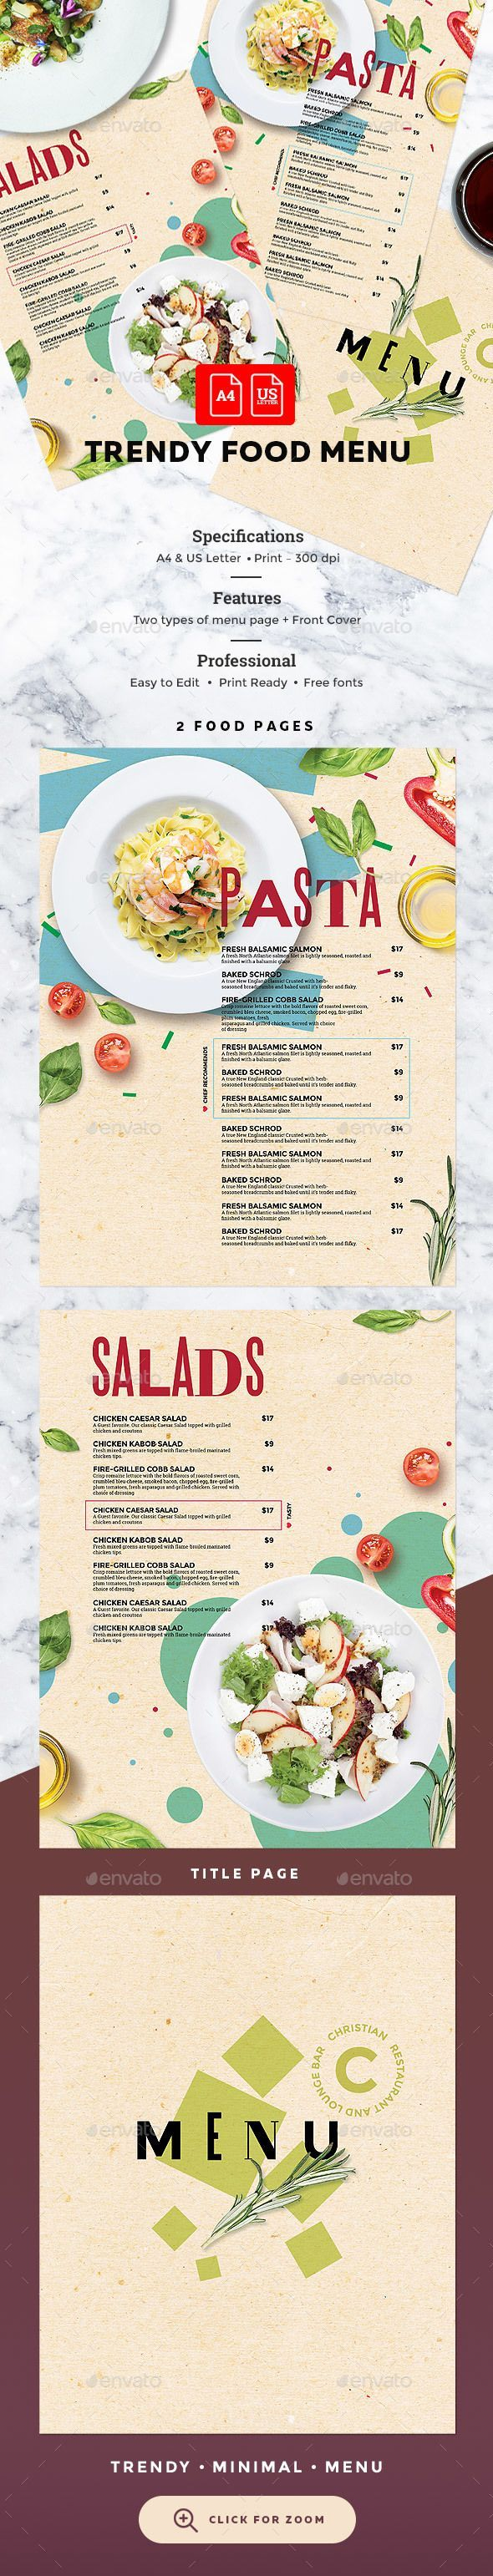 576 best Design images on Pinterest | Food menu template, Menu ...